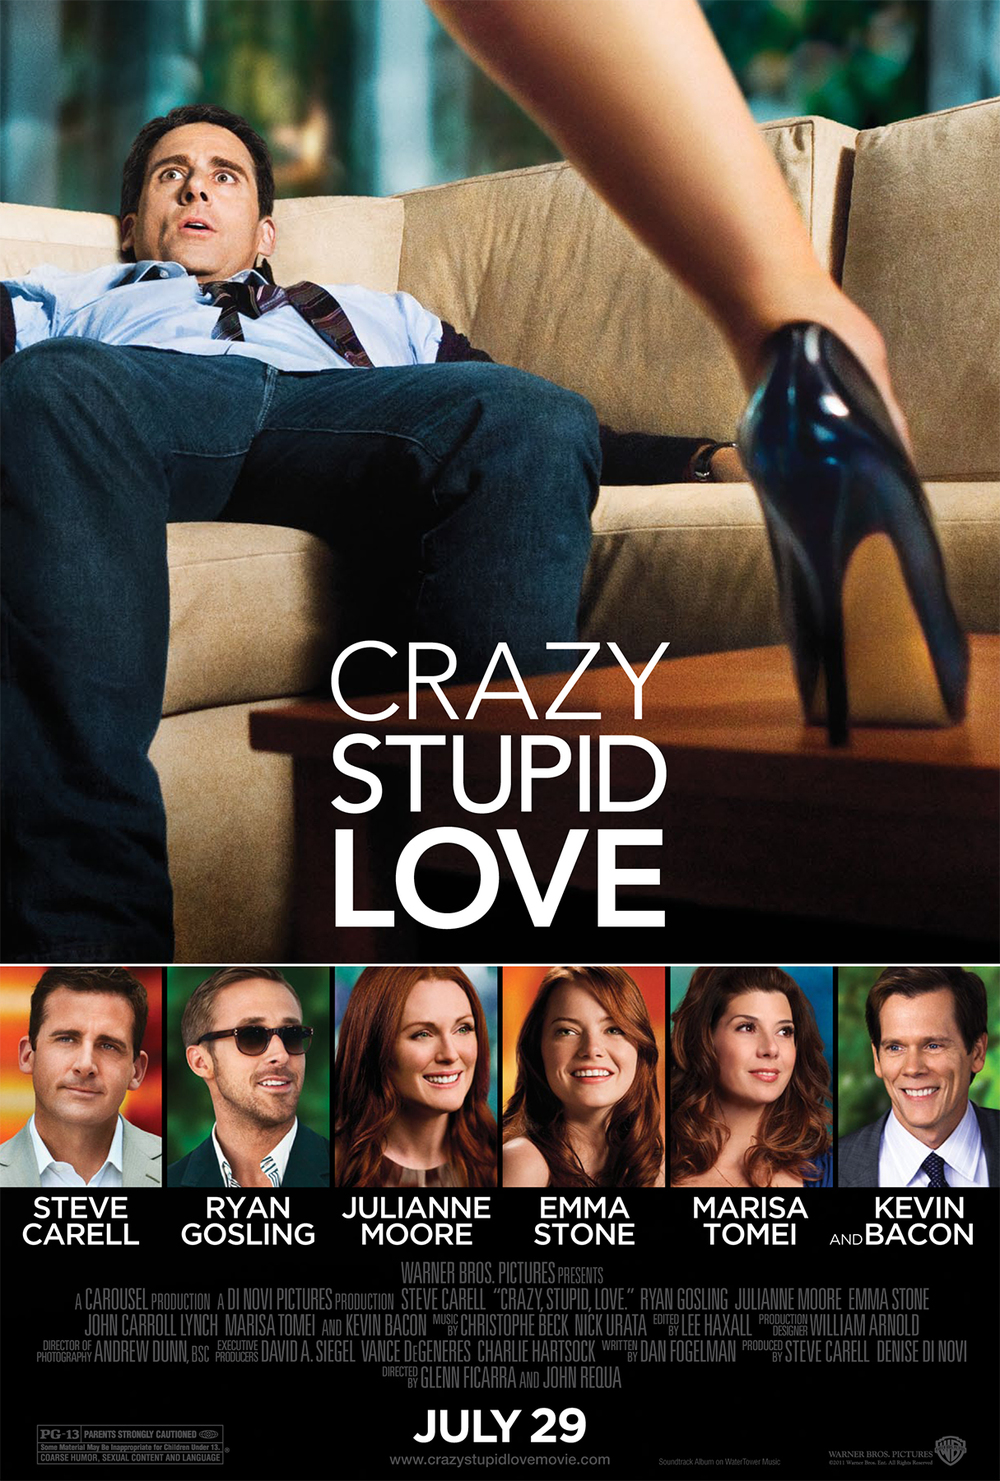 crazy-stupid-love-movie-poster1.jpg